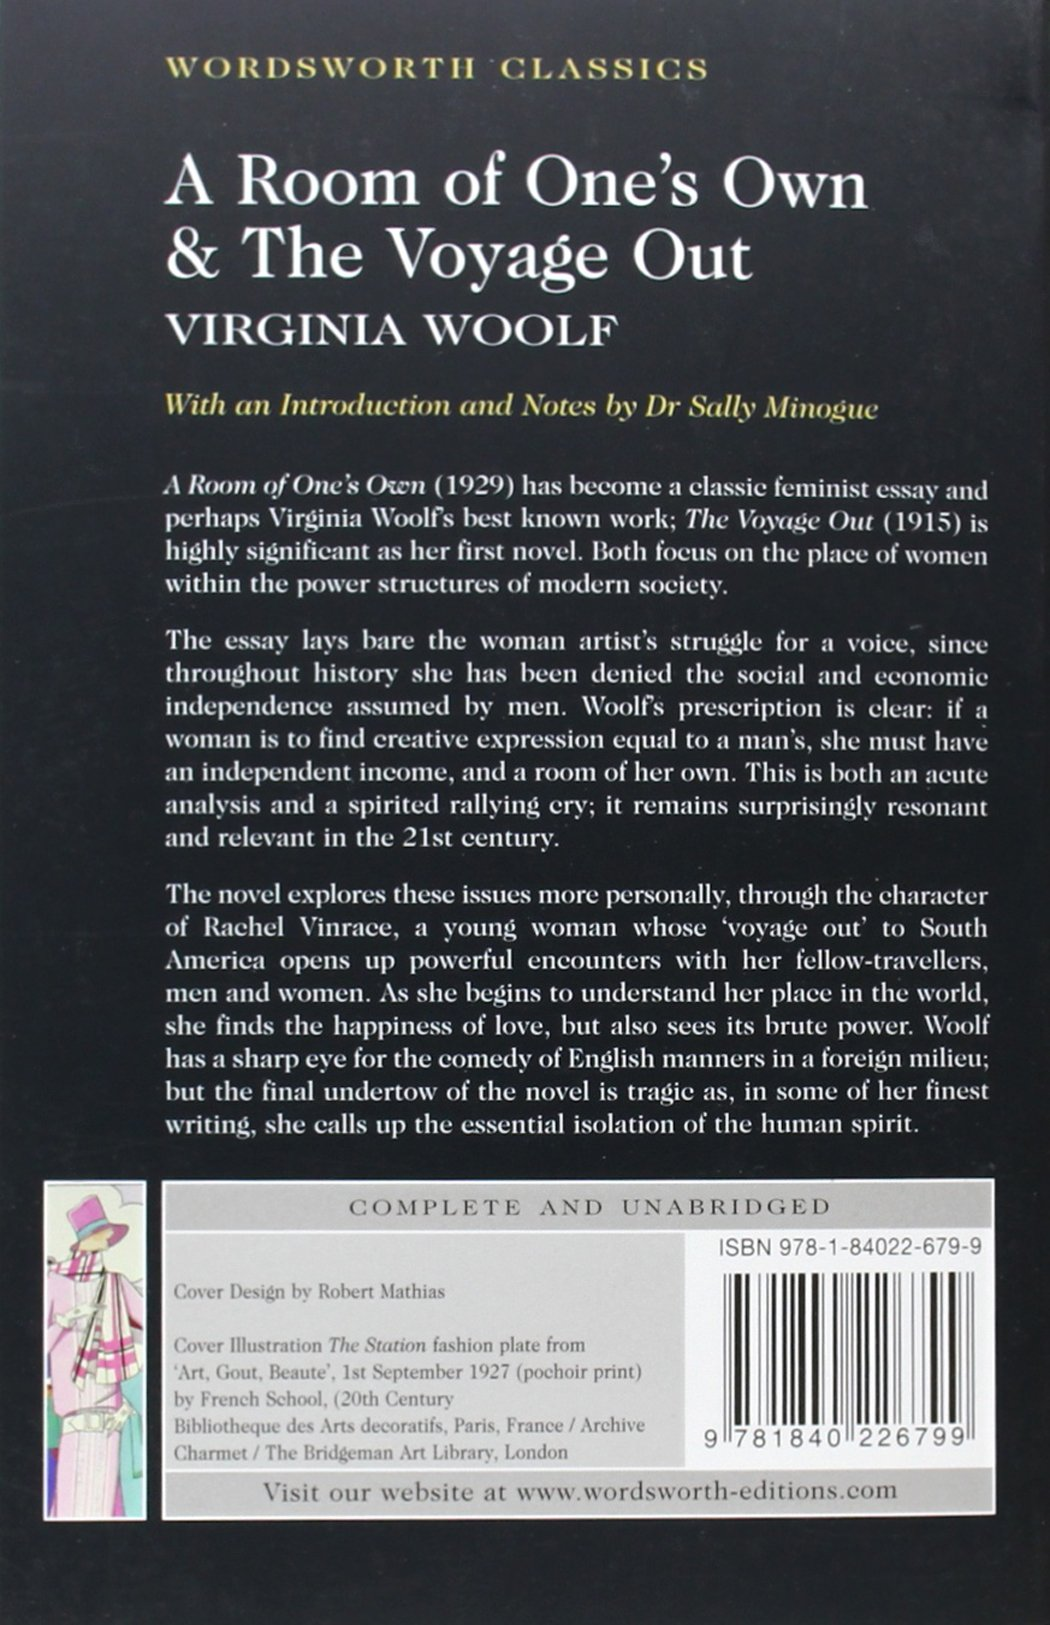 a room of one s own the voyage out wordsworth classics amazon a room of one s own the voyage out wordsworth classics amazon co uk virginia woolf dr sally minogue dr keith carabine 0884717944464 books